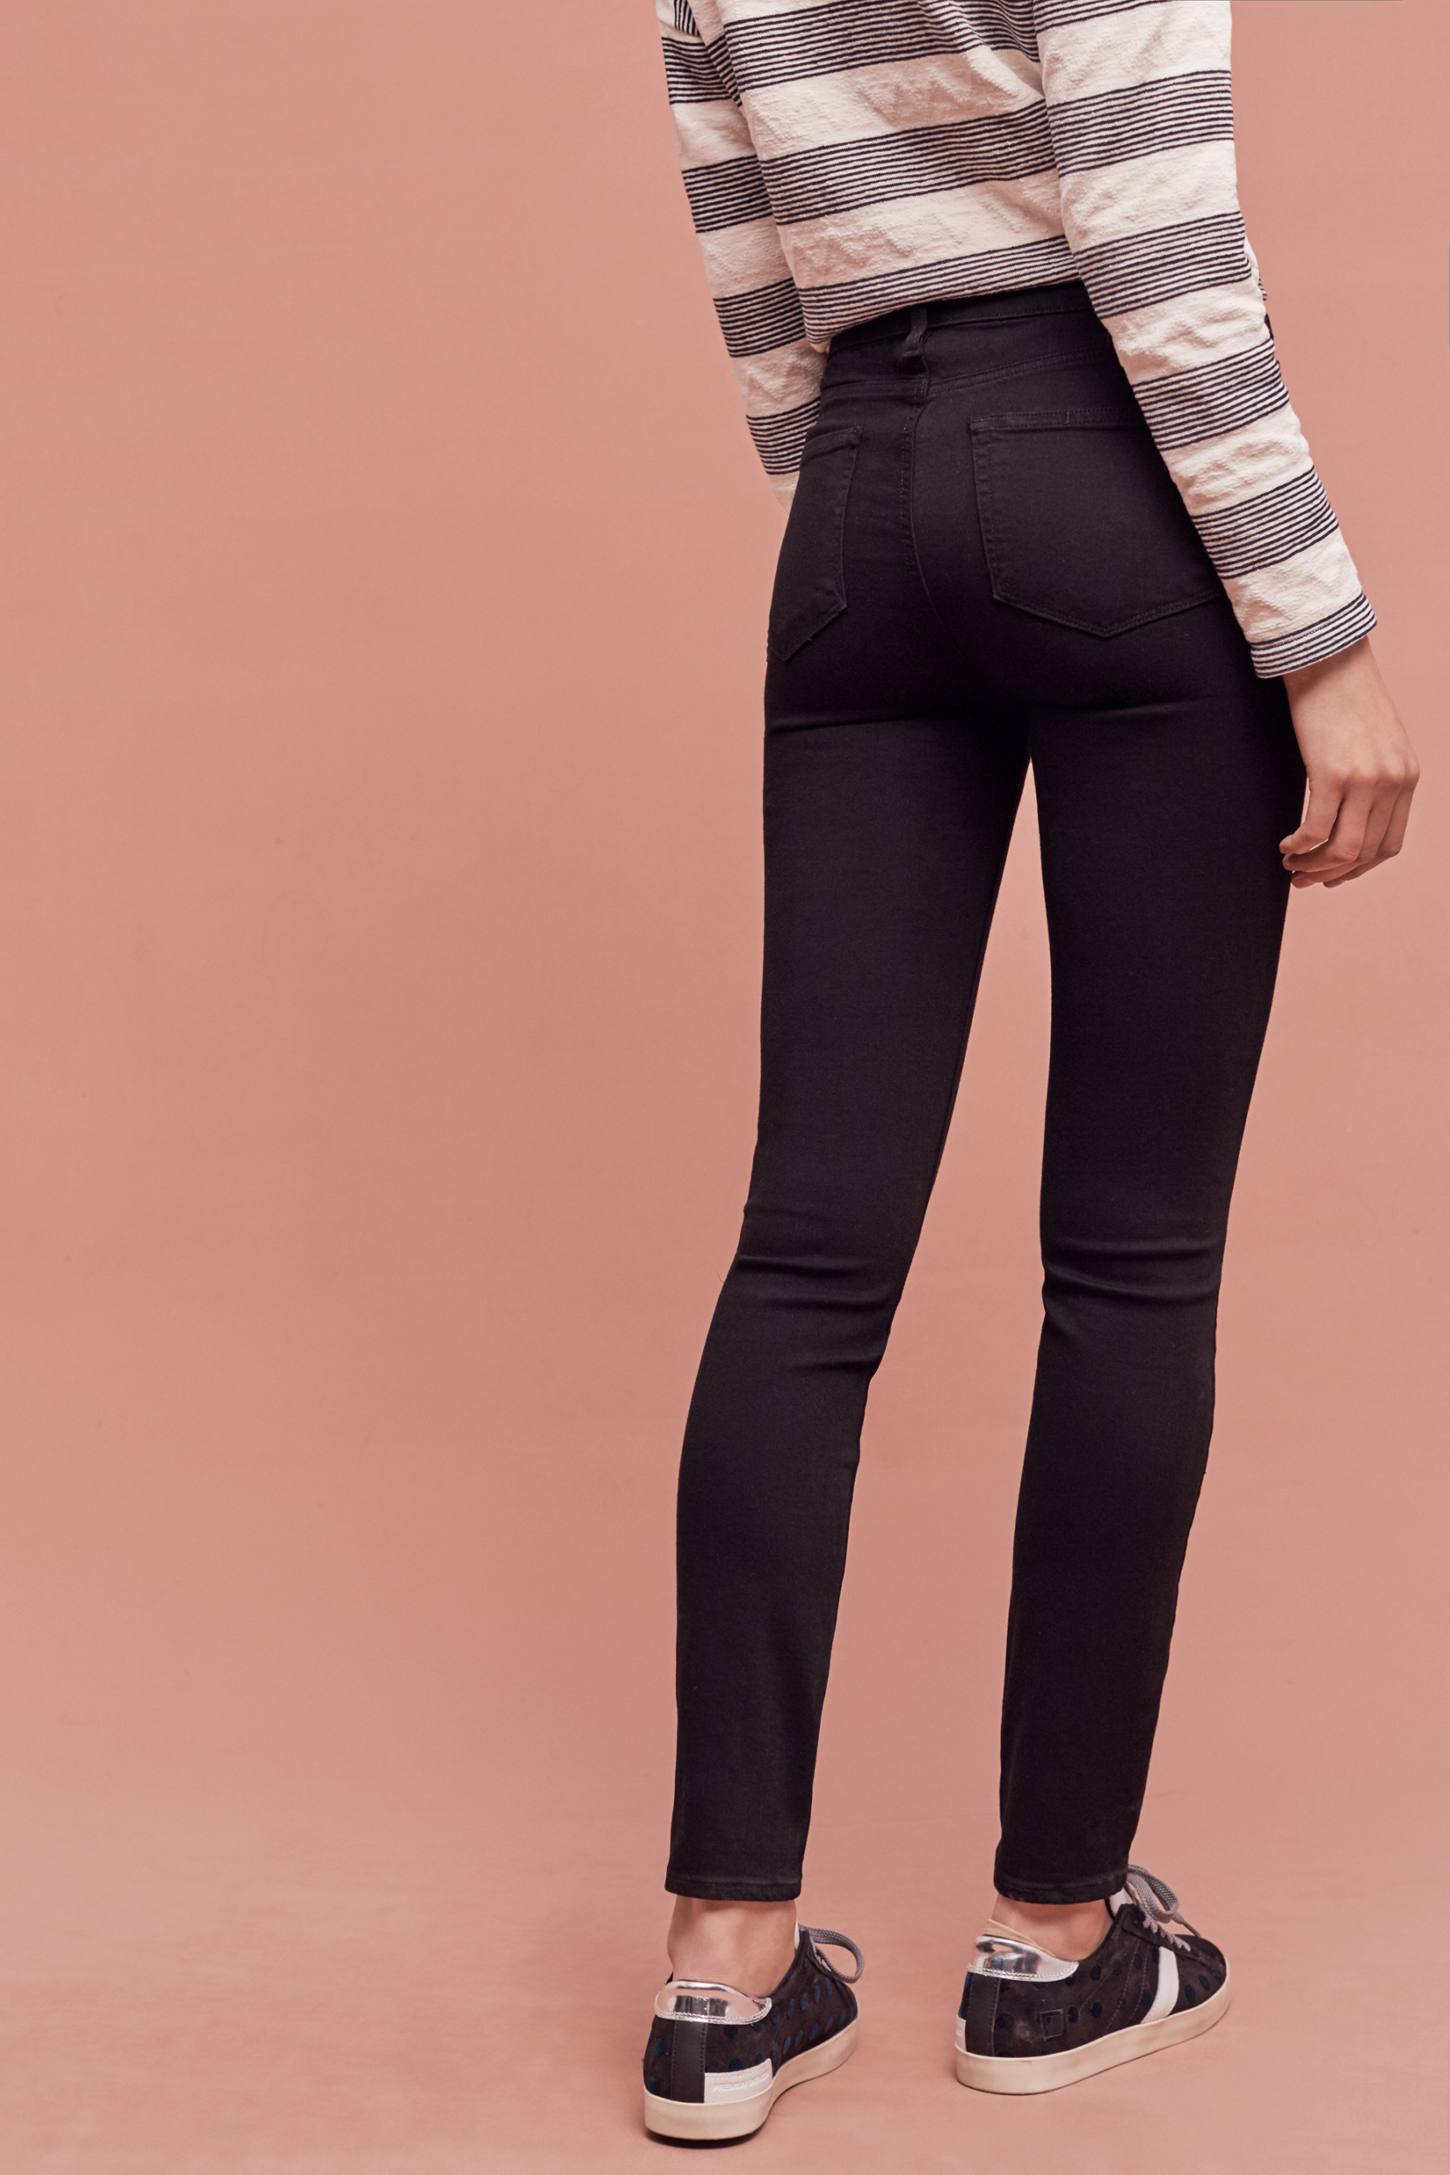 Slide View: 4: Paige Hoxton High-Rise Skinny Jeans